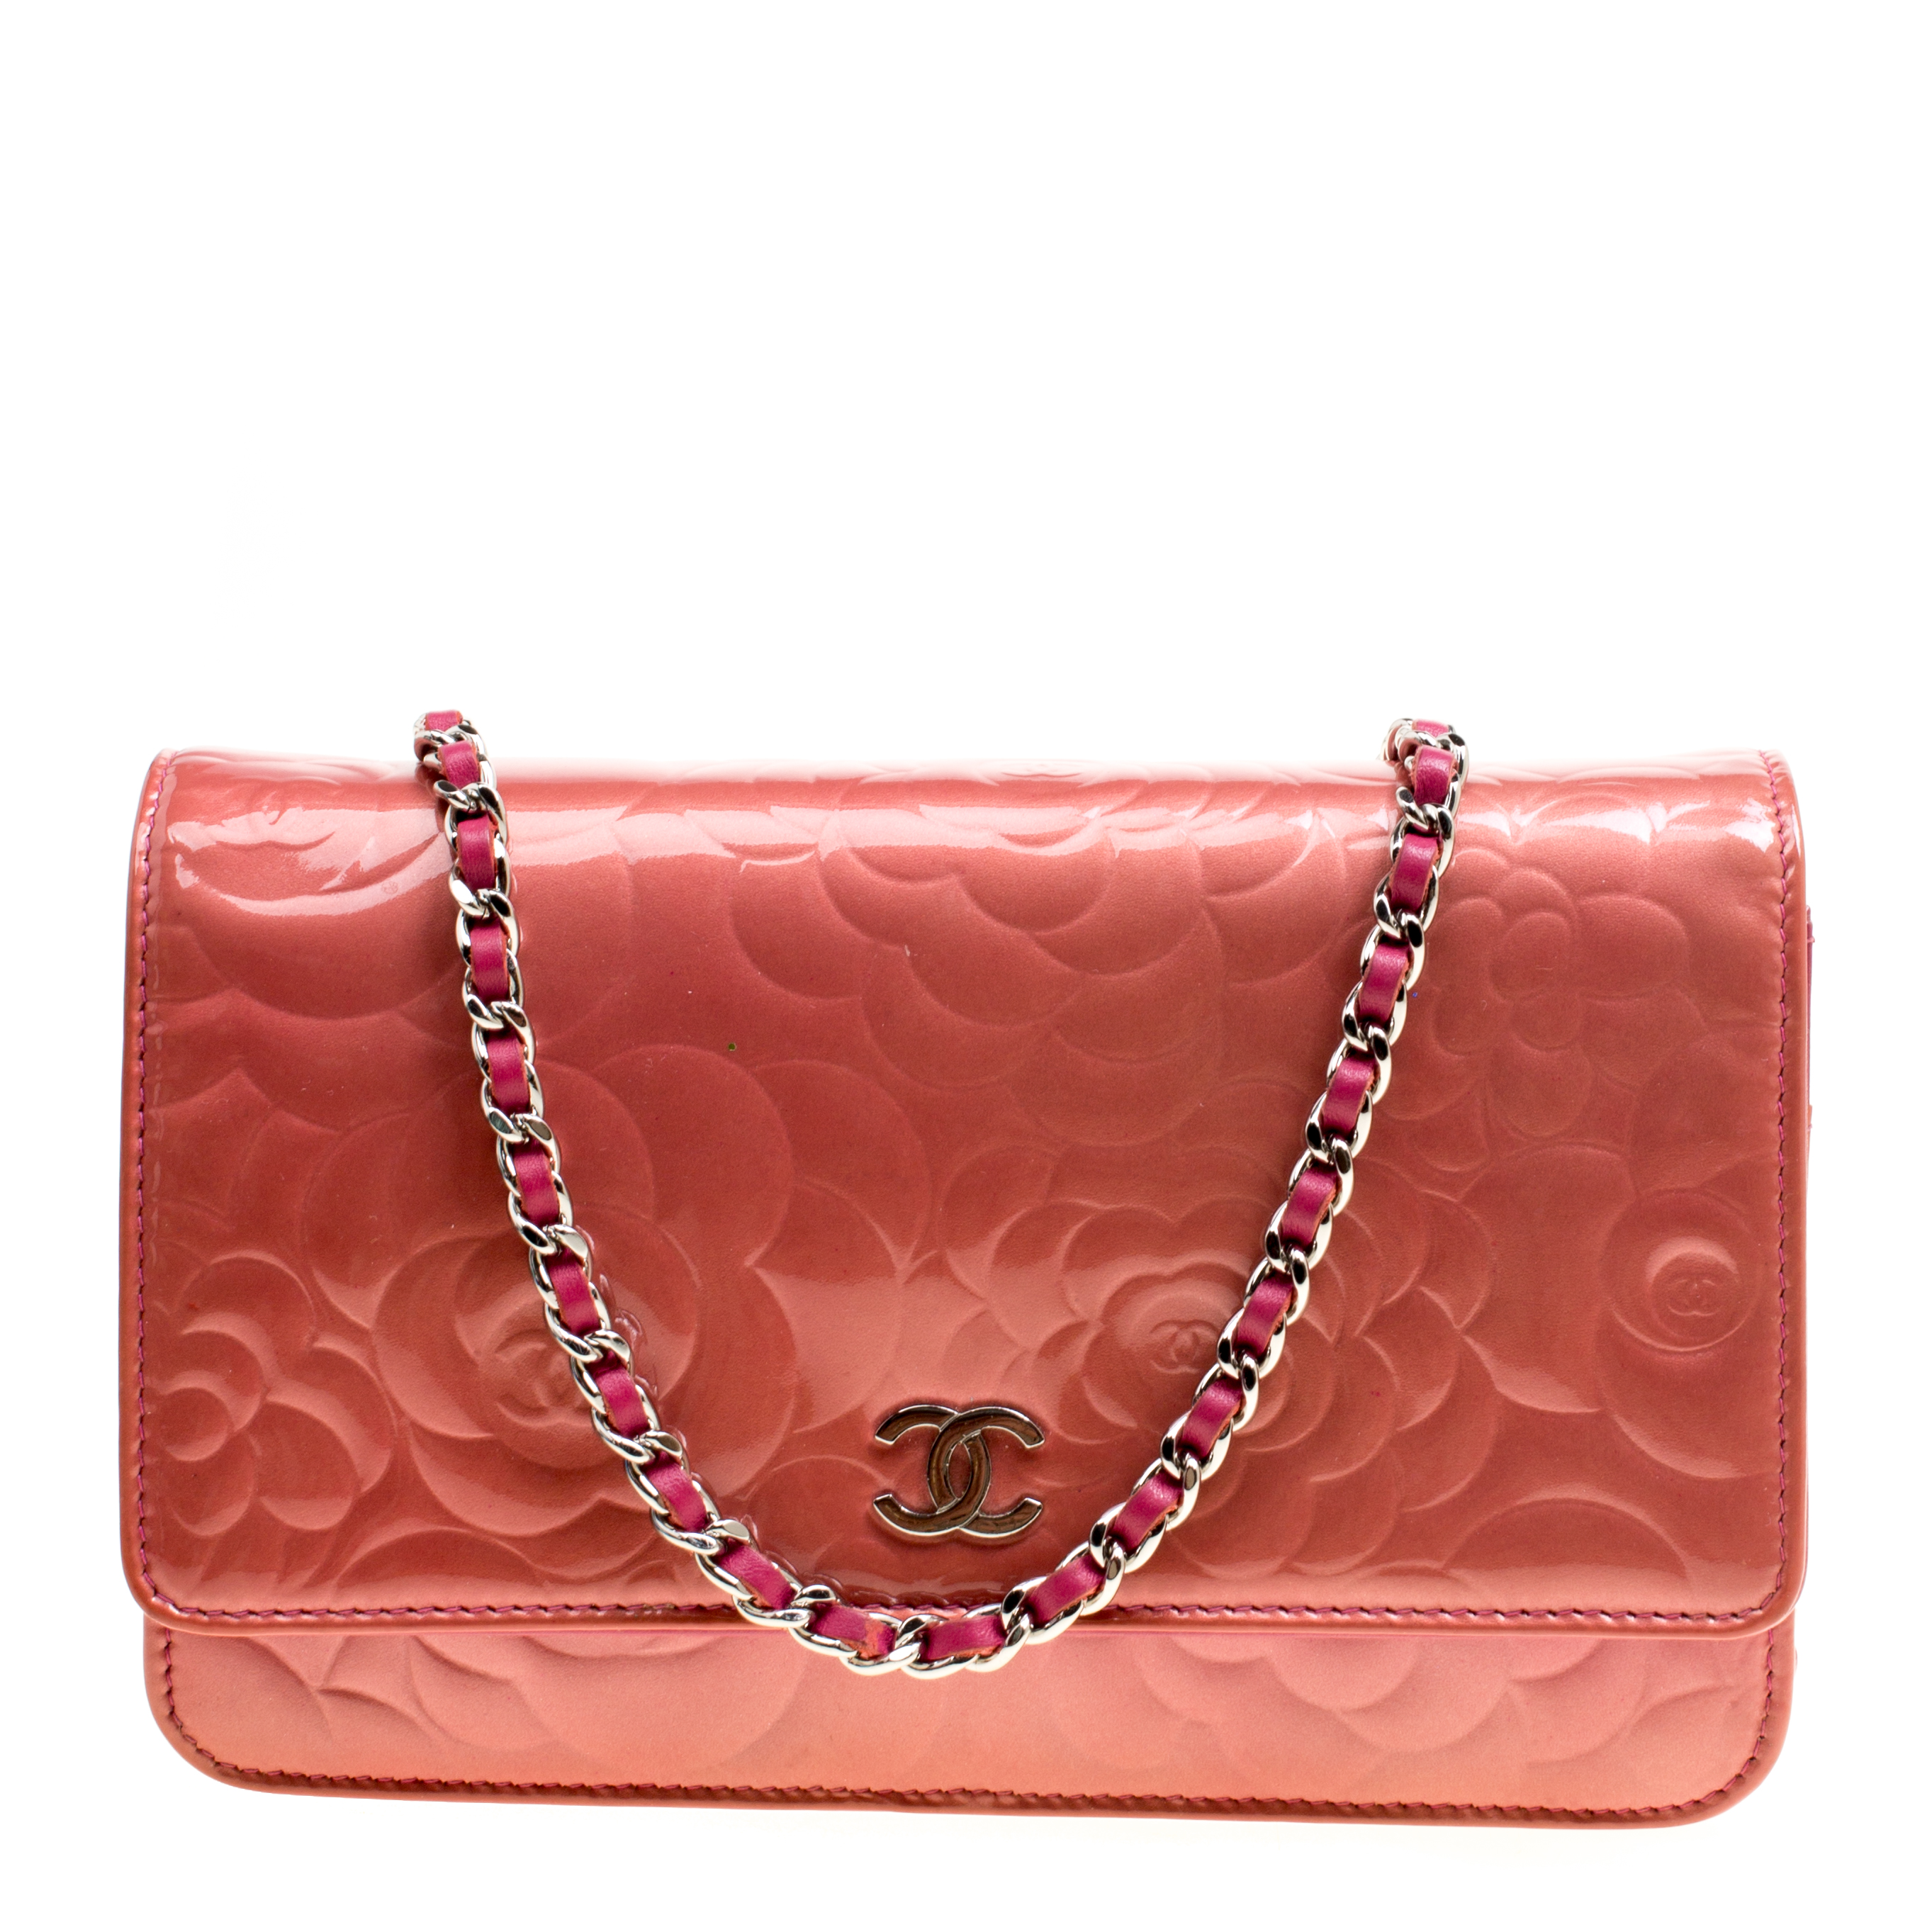 ... Chanel Rose Patent Leather Camellia Wallet on Chain. nextprev. prevnext 5ae9c46aa56f7